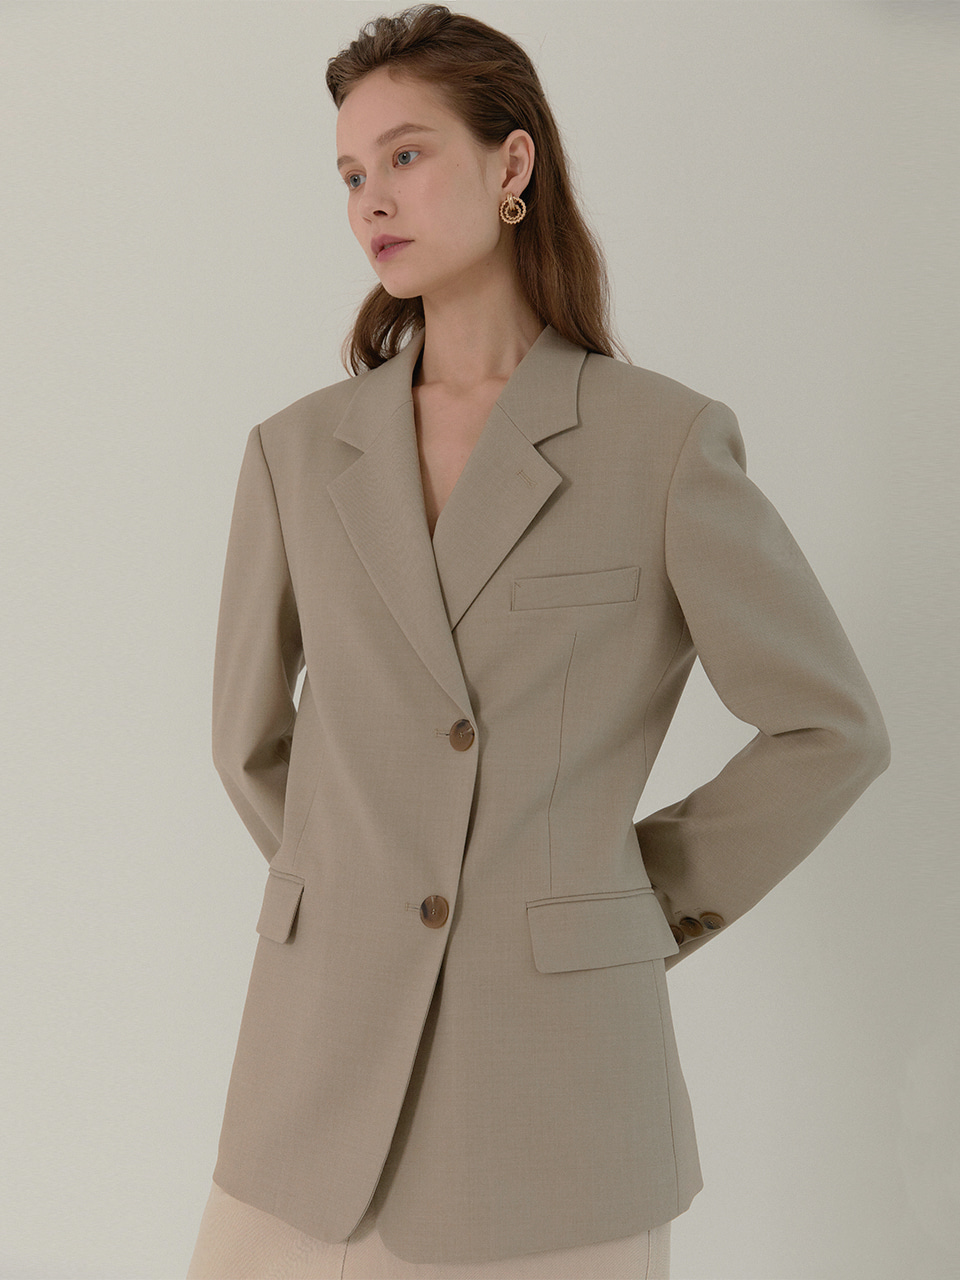 [재입고]AMBER Classic Tailored Half Double Jacket_SAND BEIGE